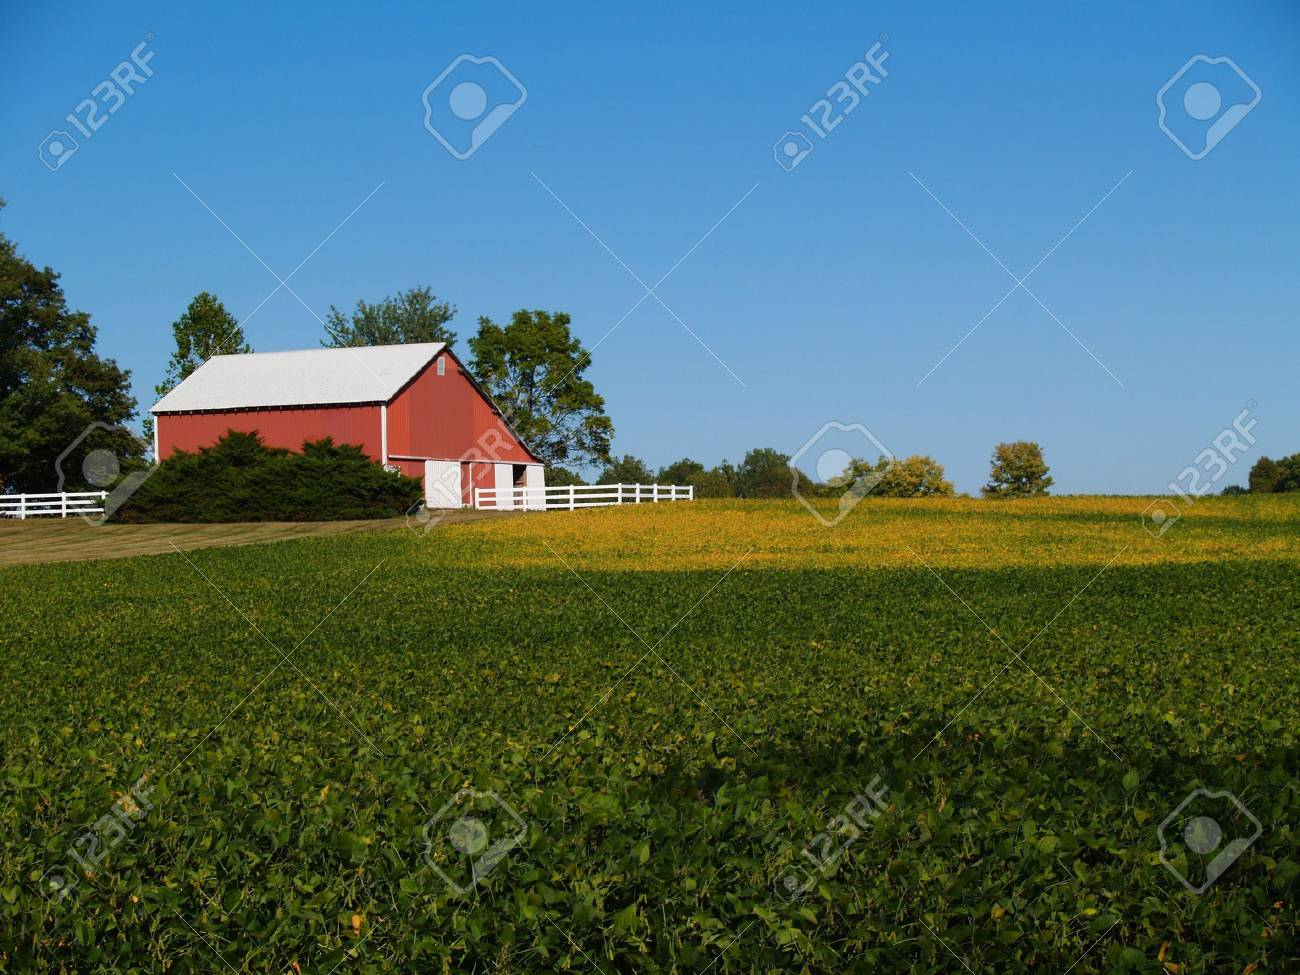 Ripening soybean field in front of red barn beneath a clear blue sky. - 5602484